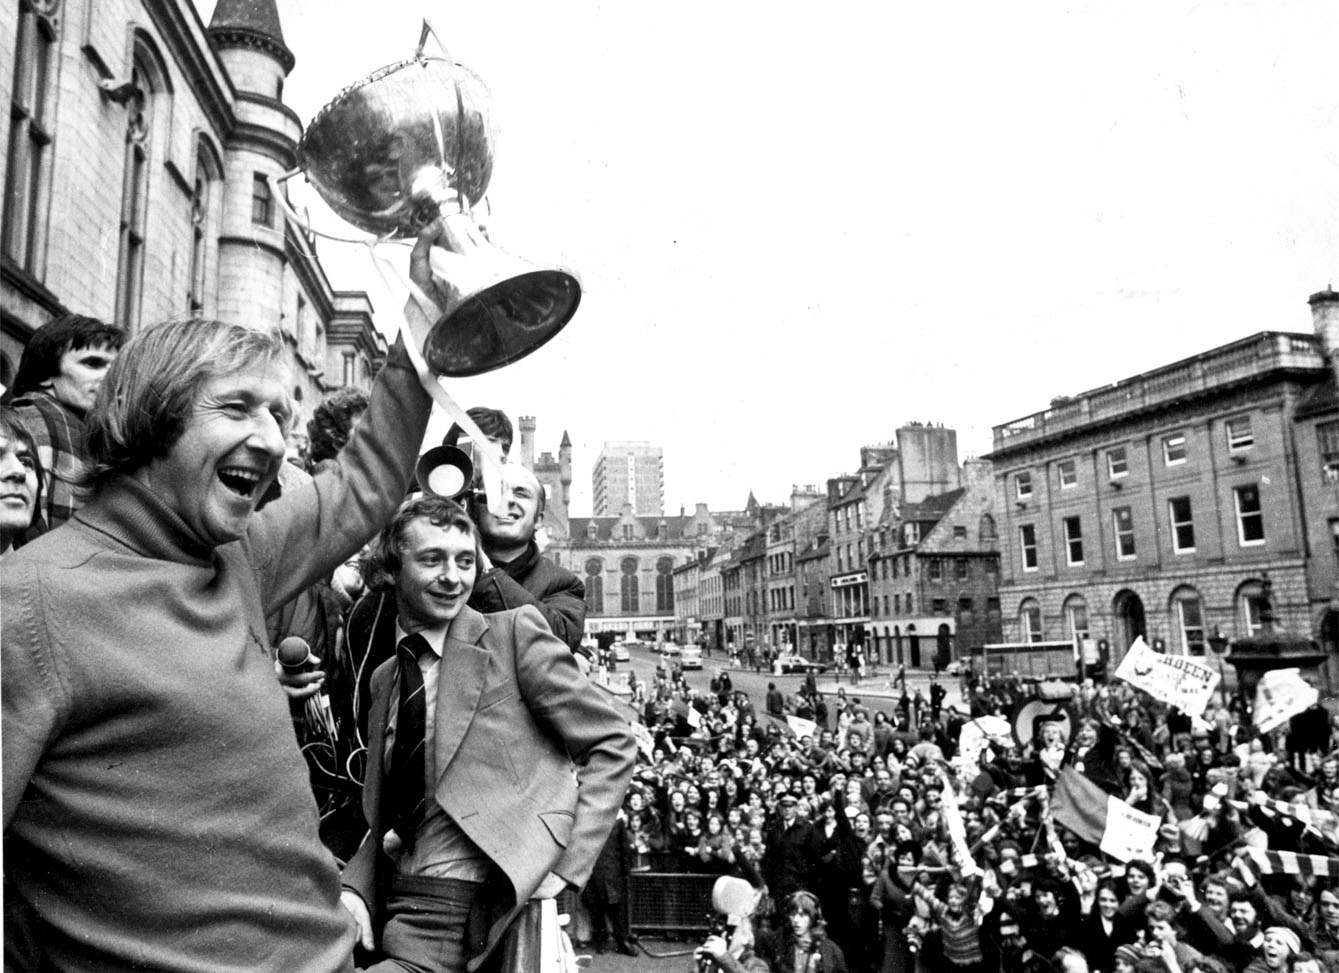 Aberdeen manager Ally MacLeod waves the League Cup trophy in 1976.